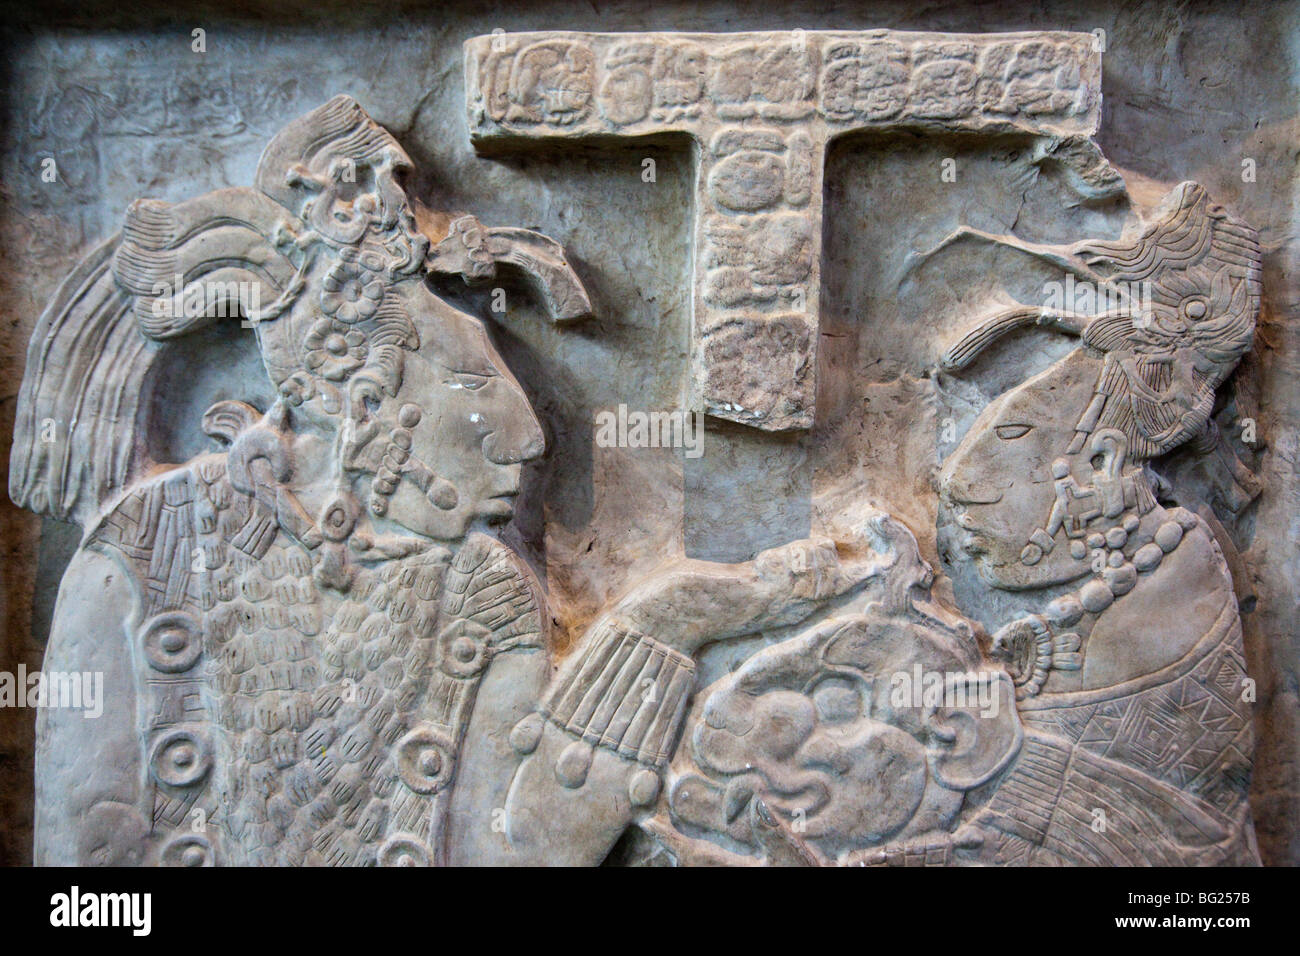 Mayan sculpture from Yaxchilan, National Museum of Anthropology Exhibit in Mexico City - Stock Image